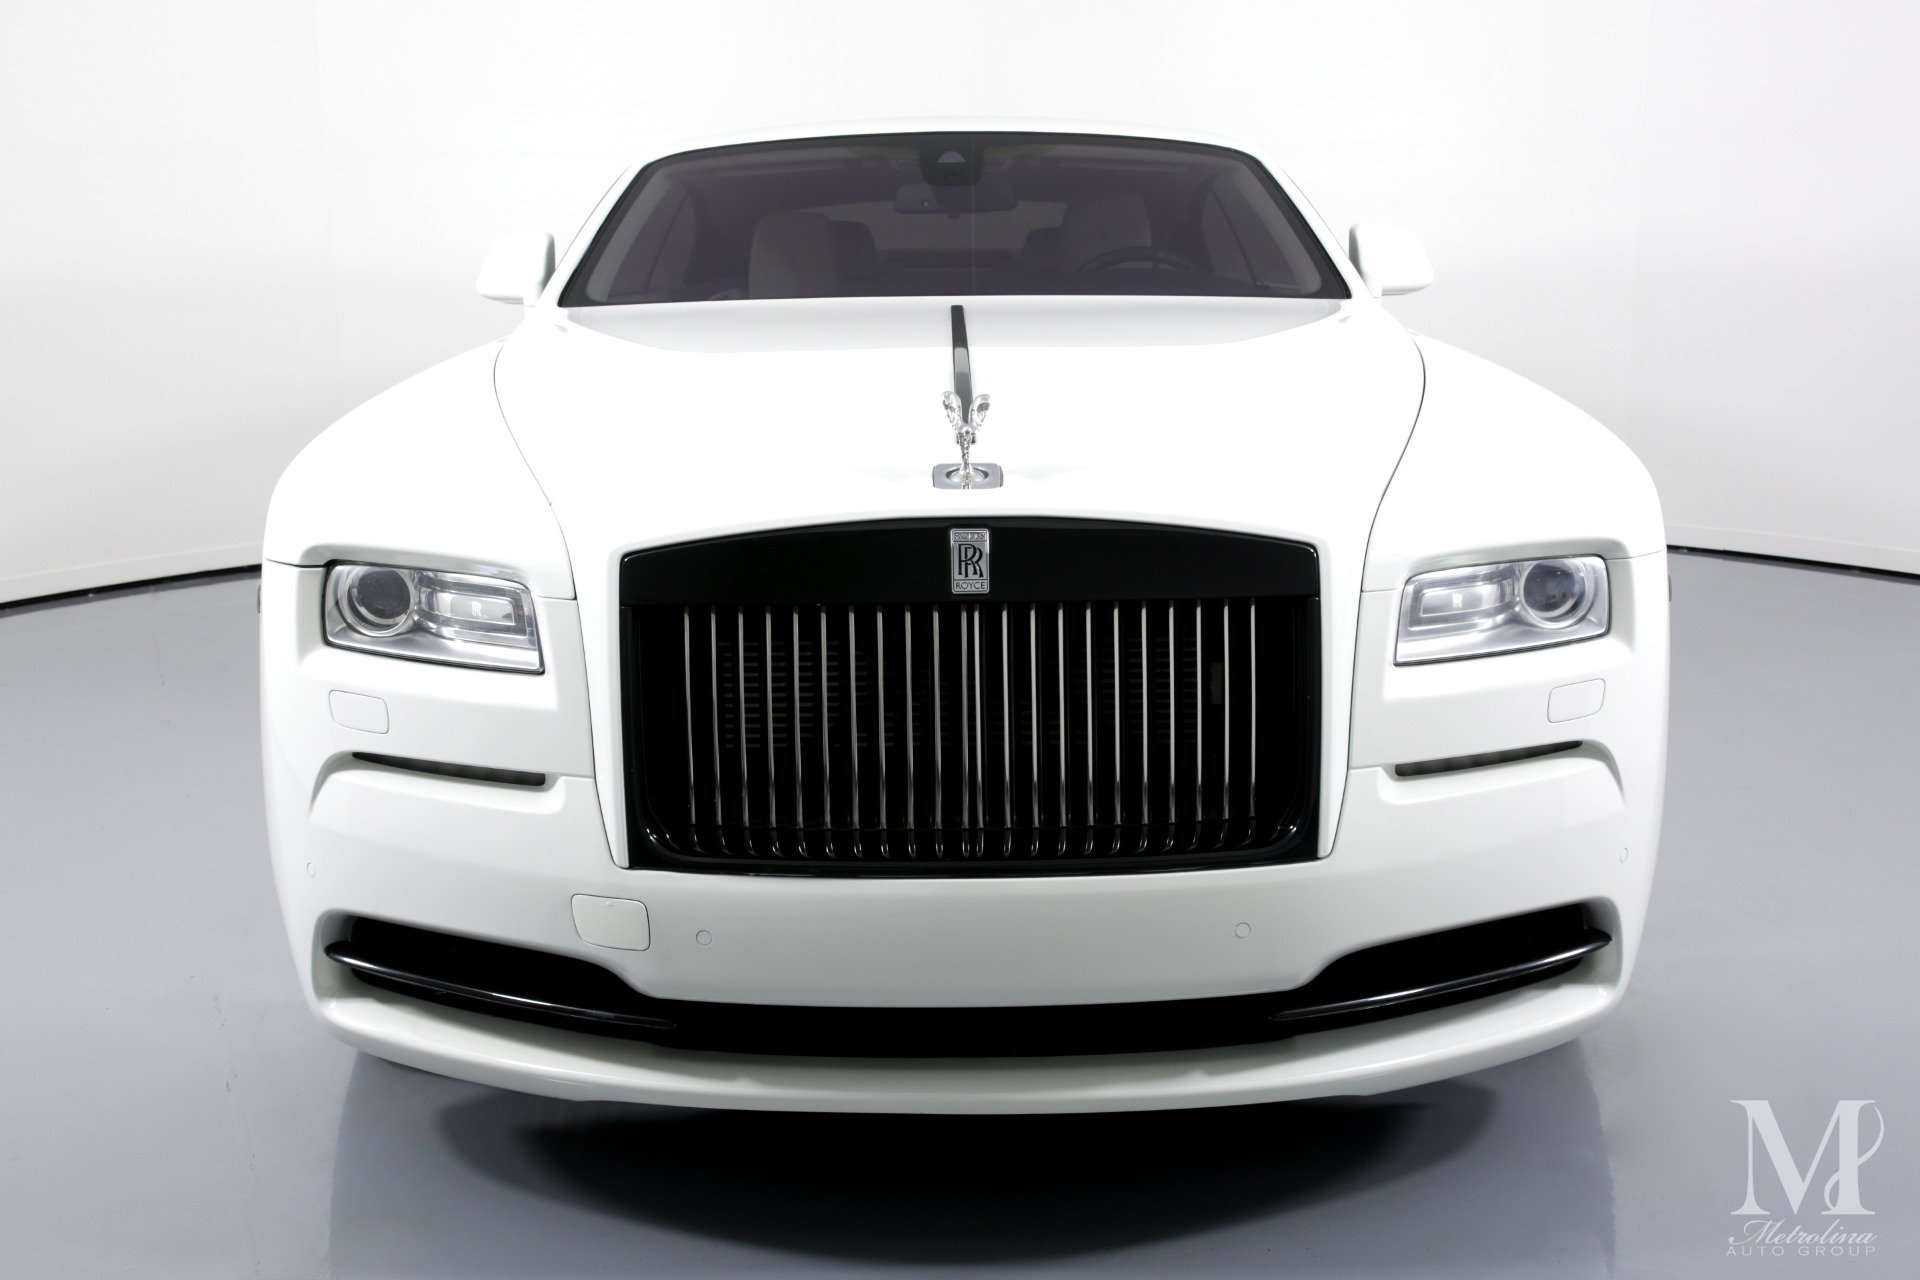 Used 2014 Rolls-Royce Wraith Base 2dr Coupe for sale $153,996 at Metrolina Auto Group in Charlotte NC 28217 - 3